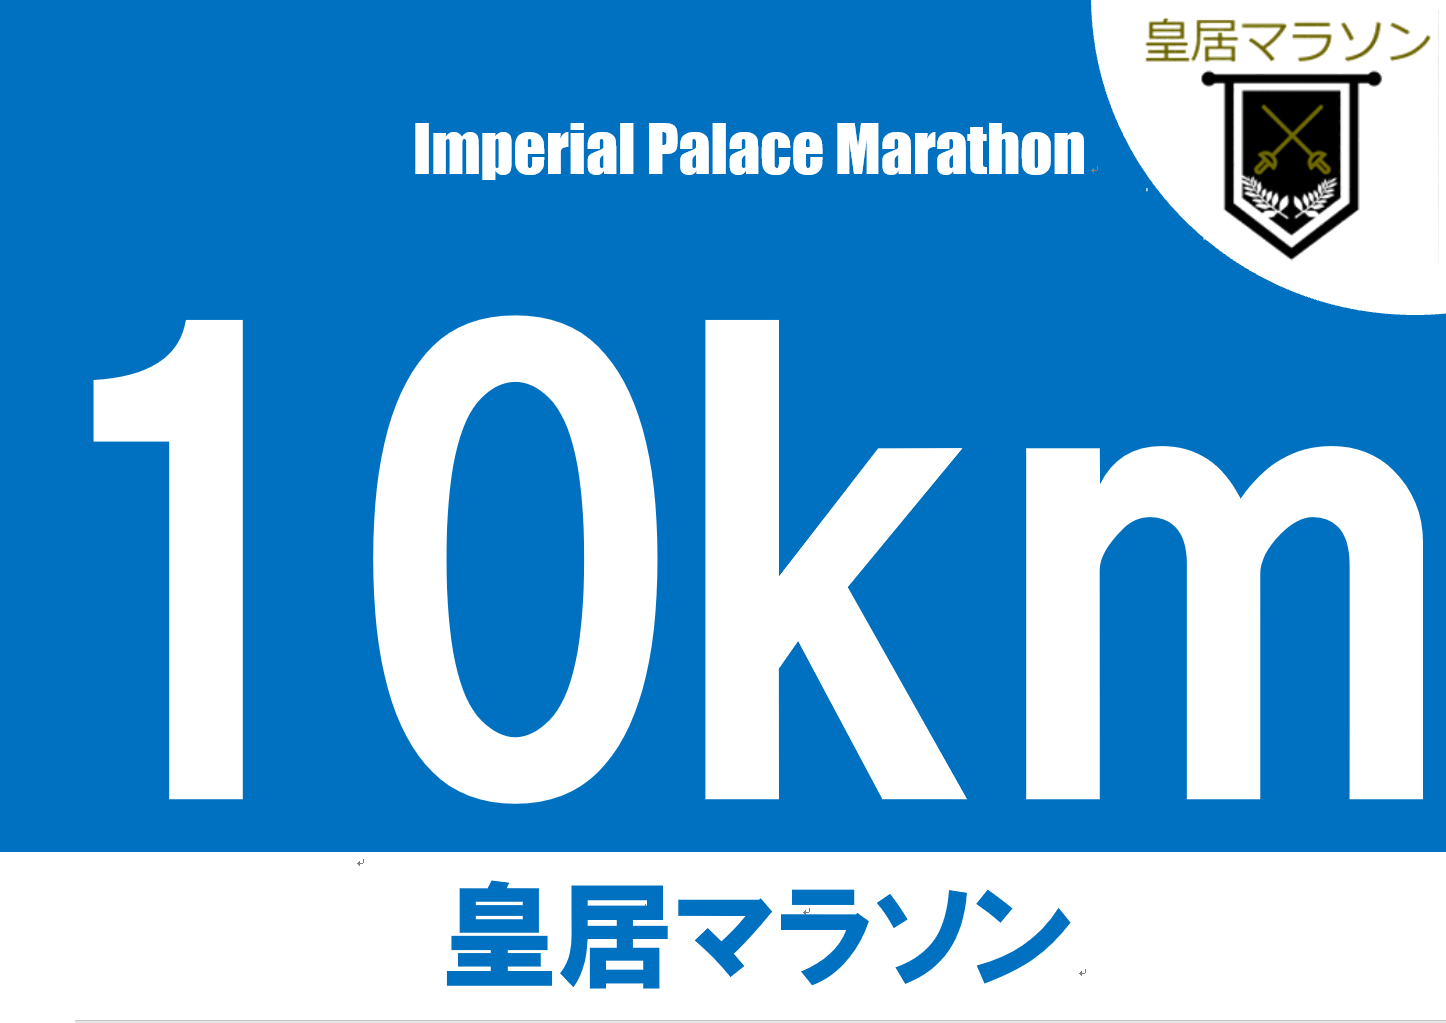 (Kokyo Marathon)10km*No Finisher Mug Cup - 株式会社ディライト(DELIGHT Corporation)